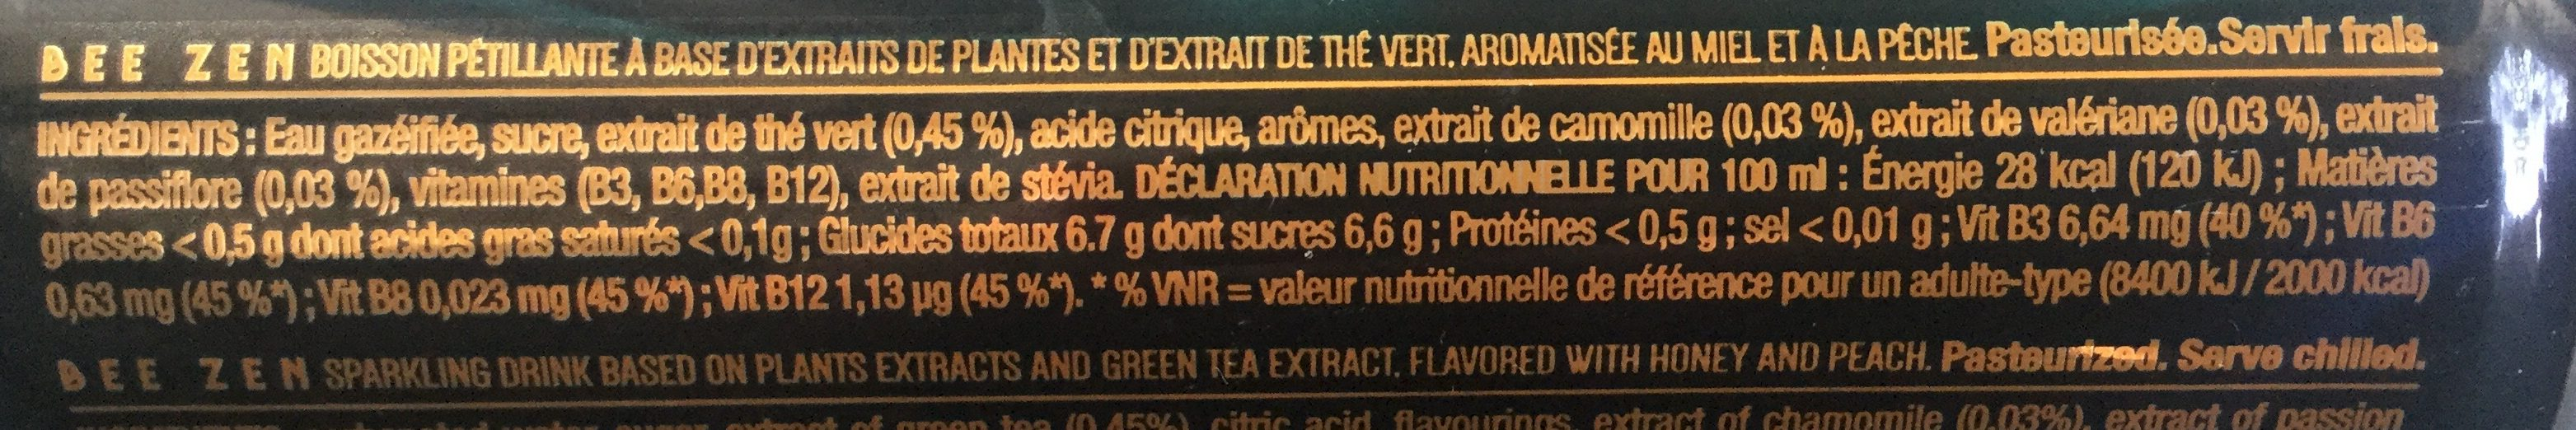 Bee Zen parfum pêche - Nutrition facts